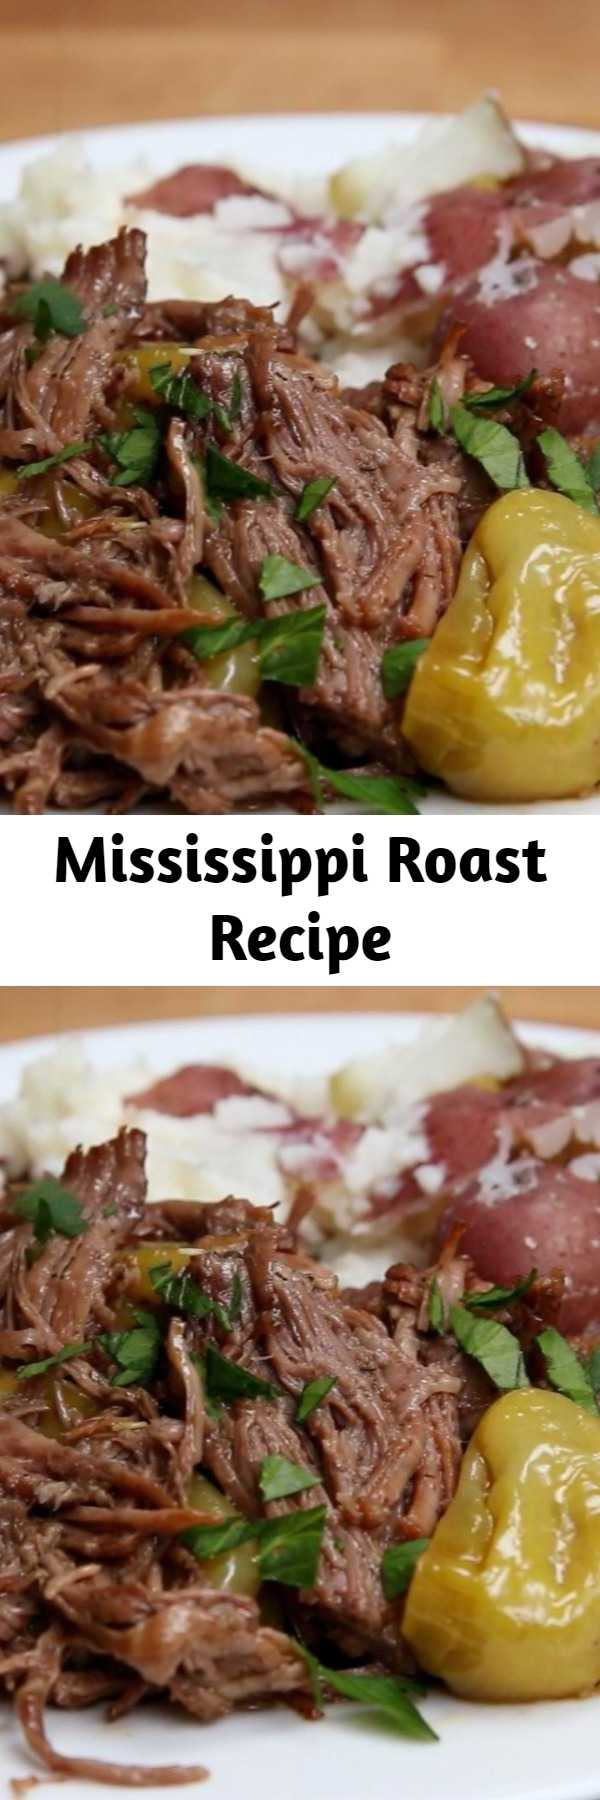 Mississippi Roast Recipe - The best roast you've ever had in your entire life. You need to make this ASAP! Simple ingredients, zero effort, 100% dinner & leftover satisfaction!